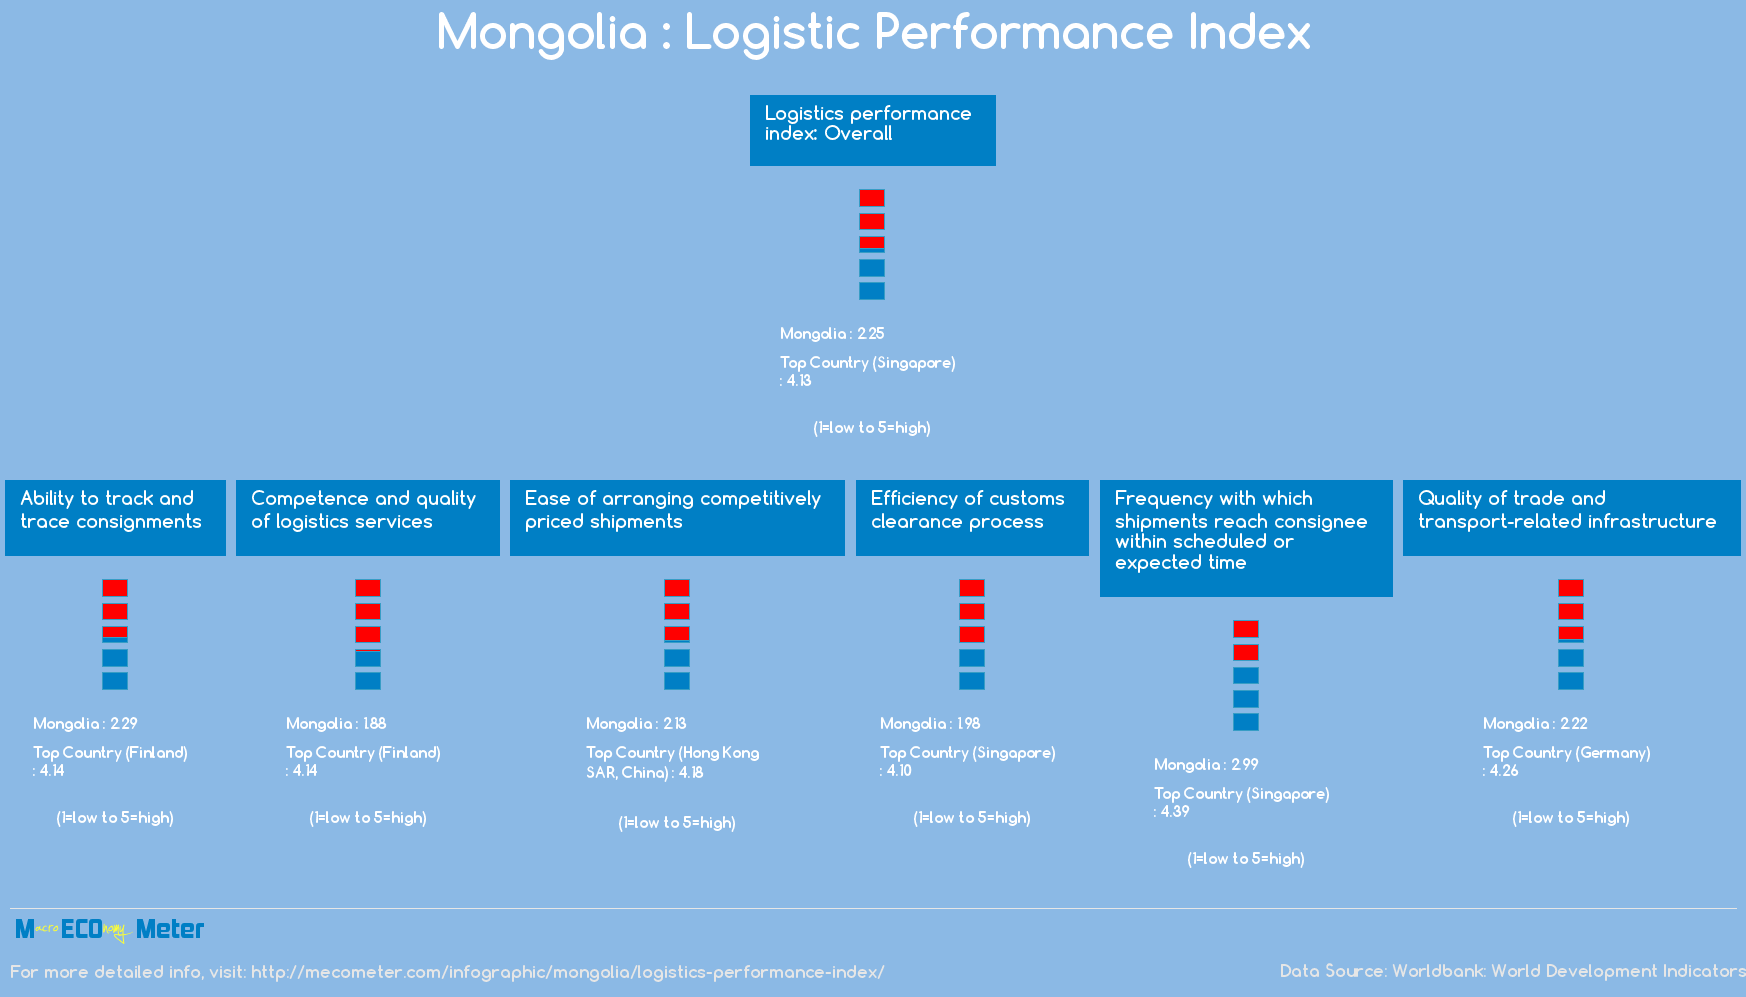 Mongolia : Logistic Performance Index